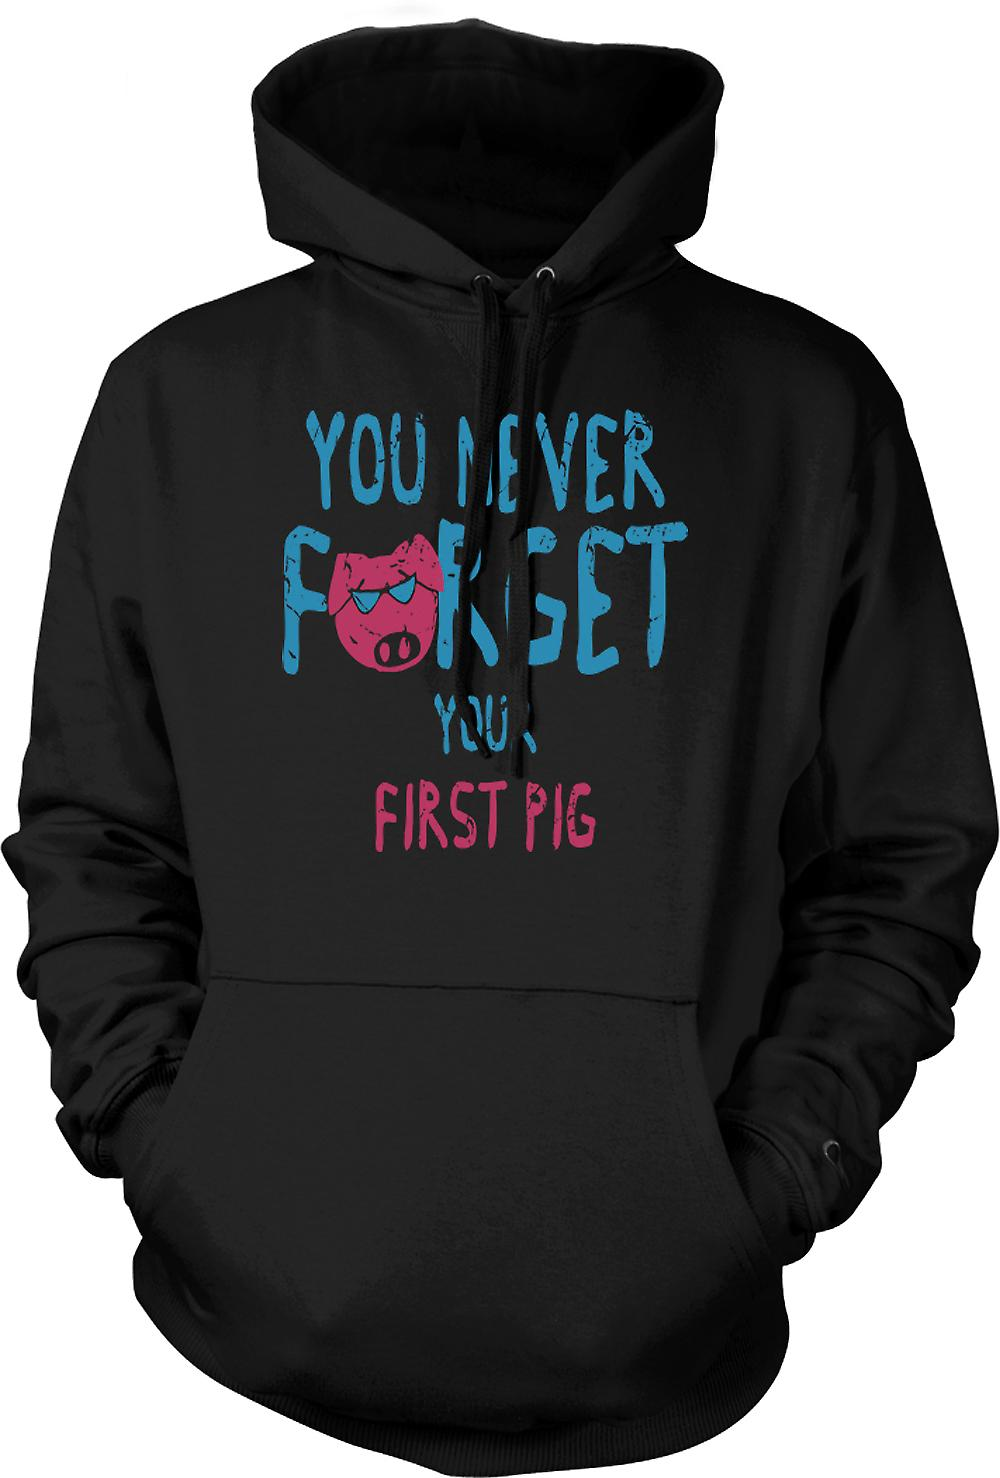 Mens Hoodie - You Never Forget Your First Pig - Funny Crude